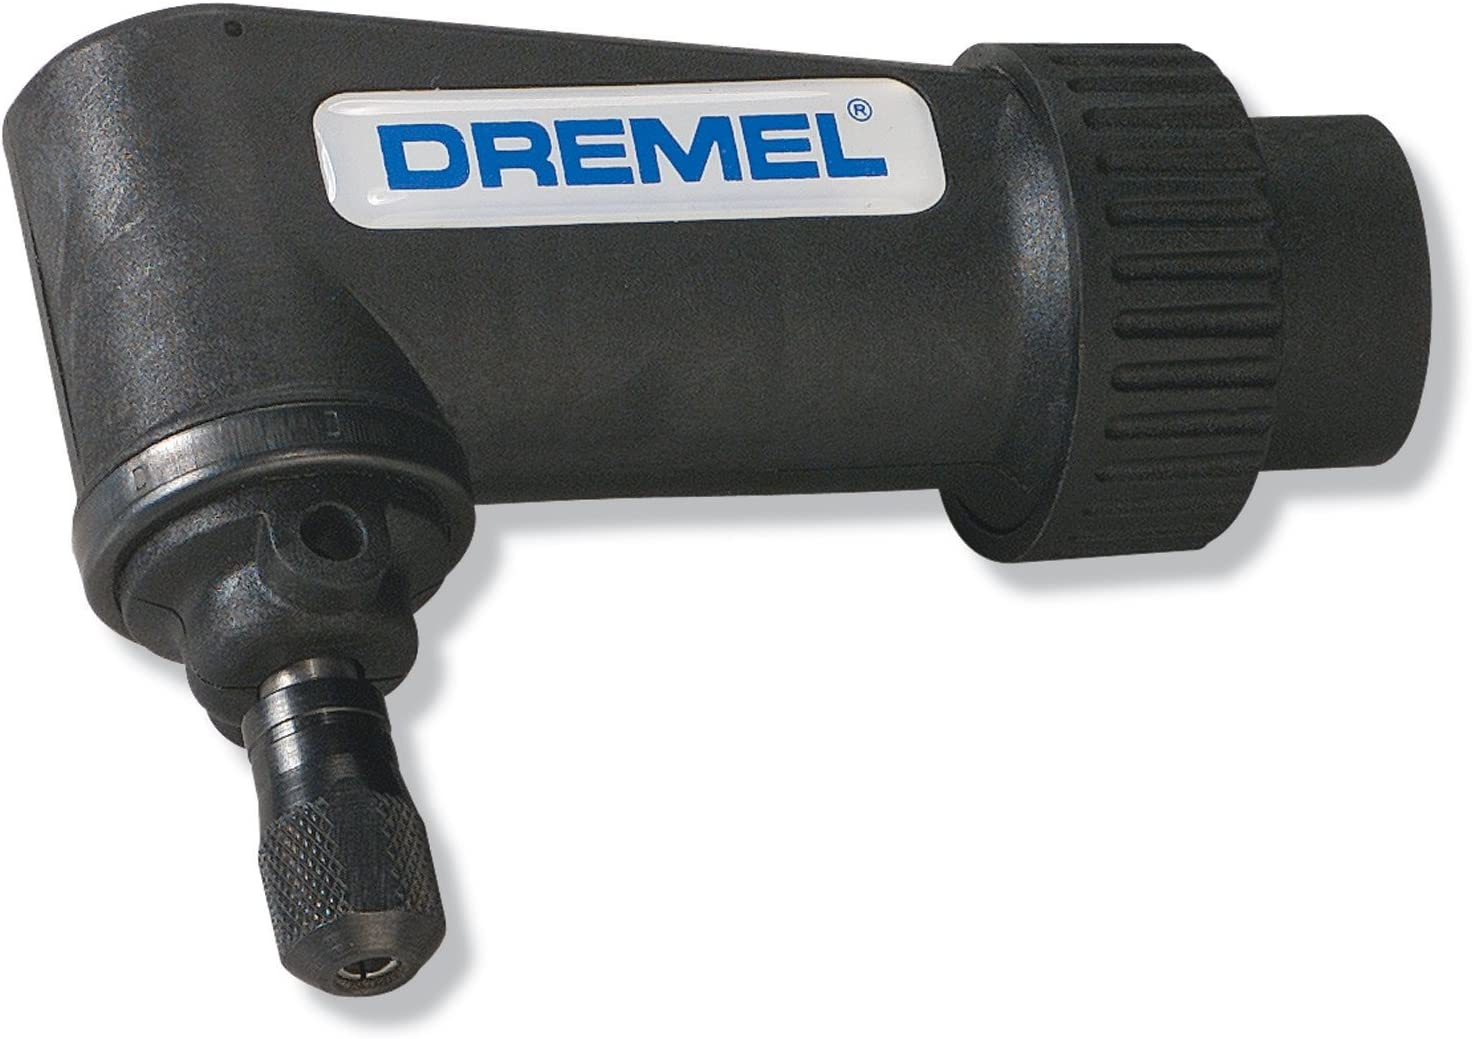 Dremel 575 Right Angle Attachment Drill Free shipping anywhere in the nation Tool- Max 51% OFF A Rotary for